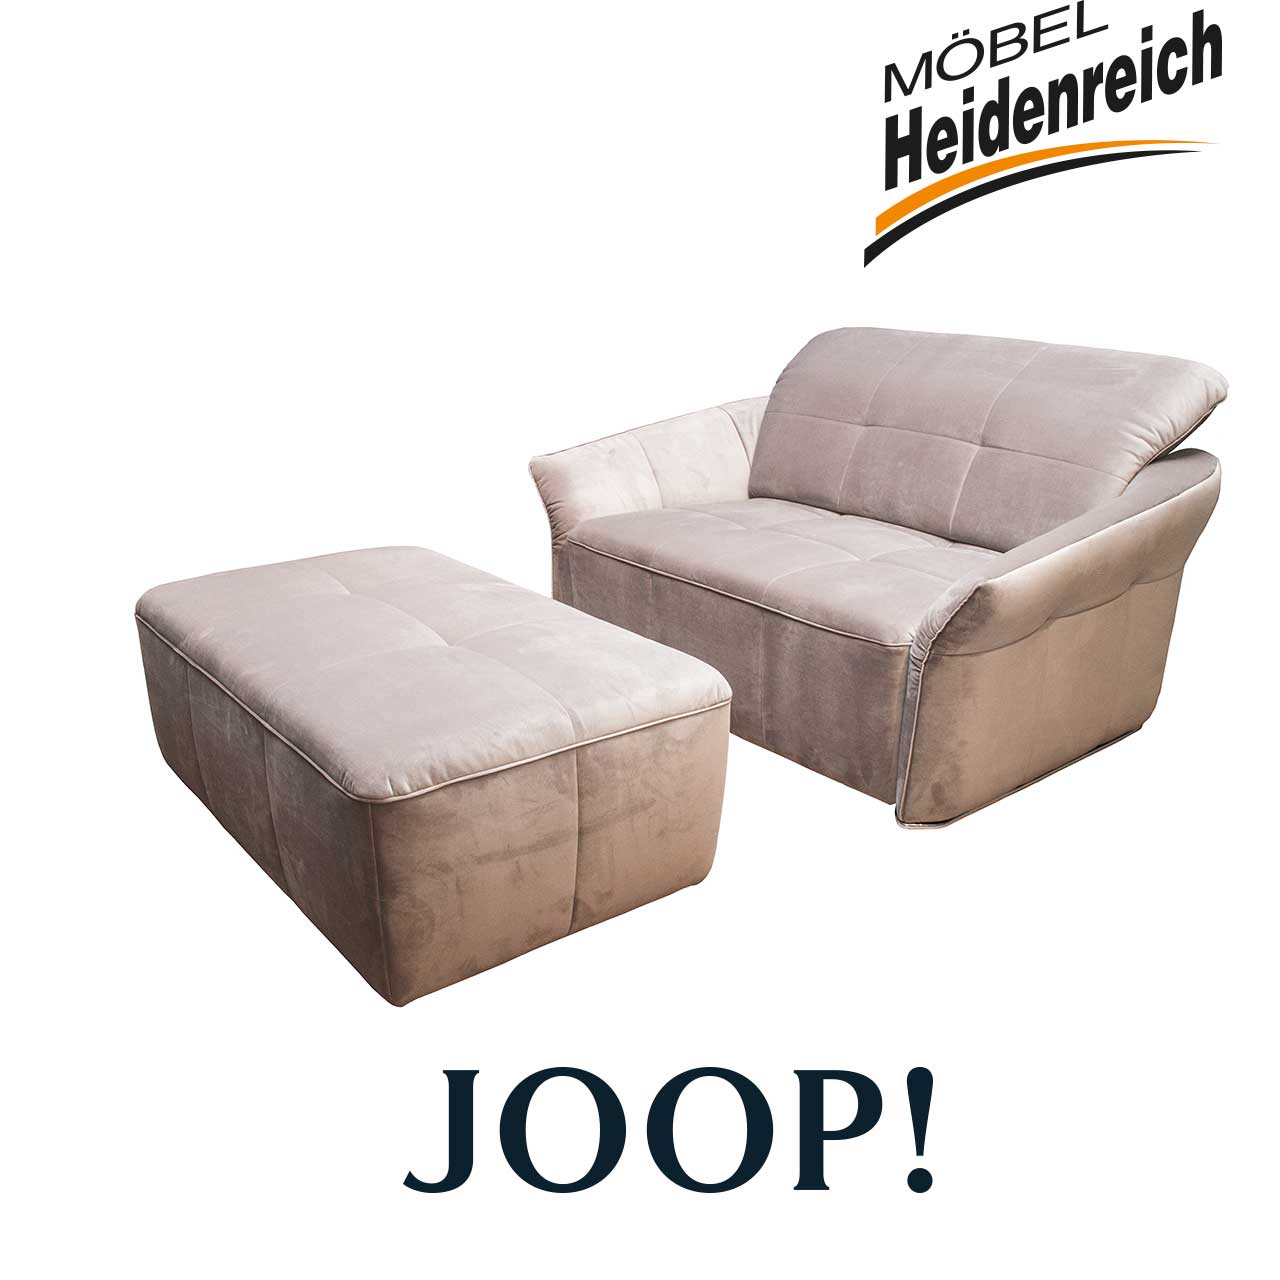 Joop sessel sessel joop 8115 williamflooring joop for Joop polstermobel